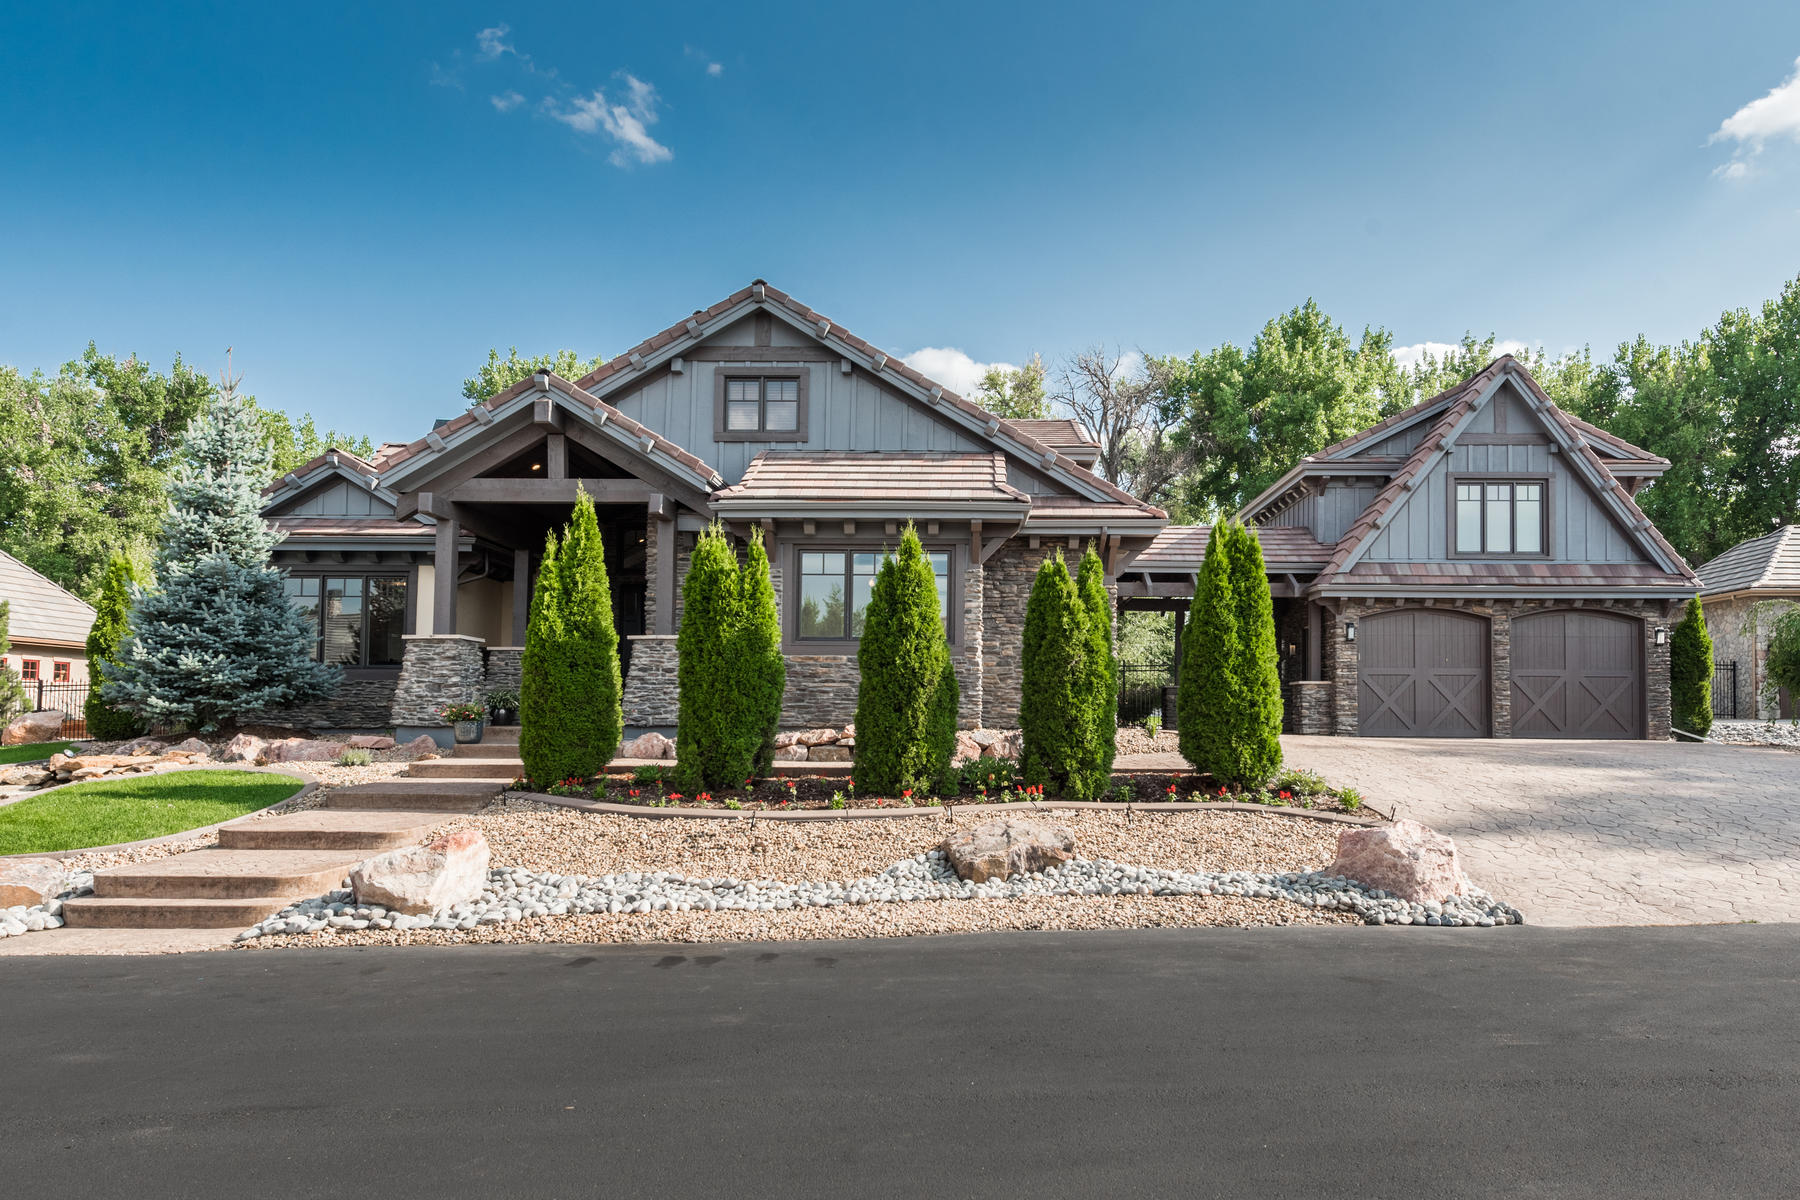 Single Family Home for Active at One Of Only Nine Luxury Residences At The Gated Orr Estates Enclave 1536 E Fair Pl Centennial, Colorado 80121 United States